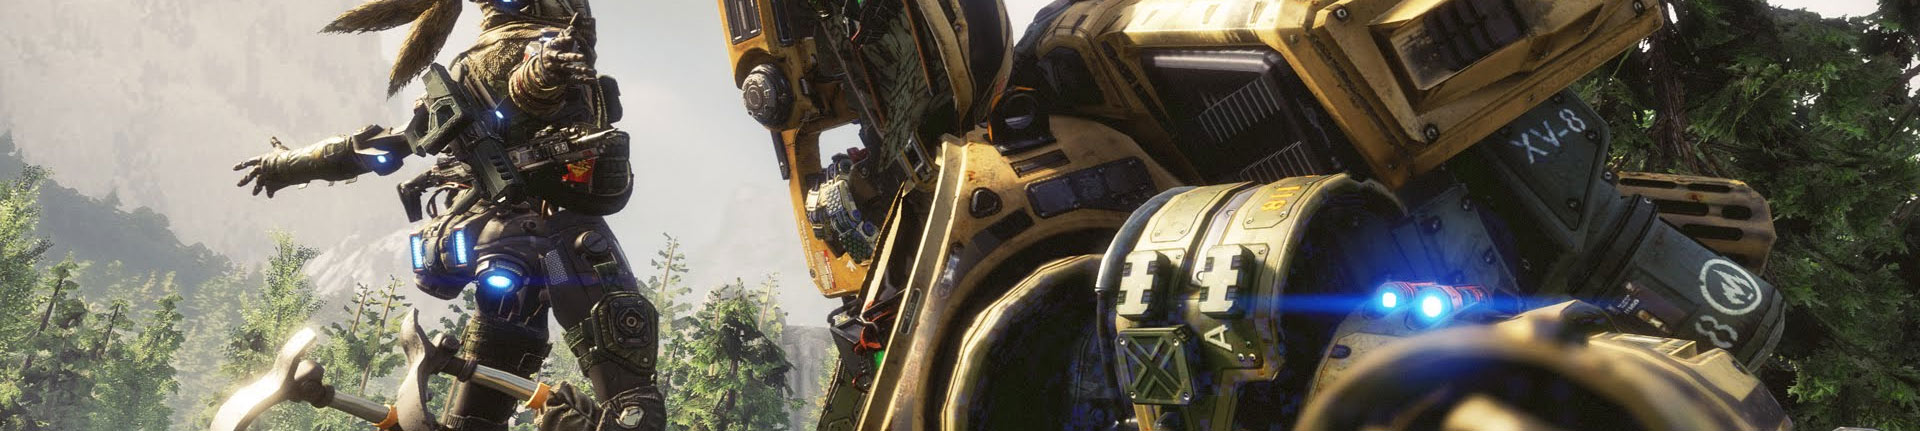 5 ways Titanfall 2 can better its predecessor